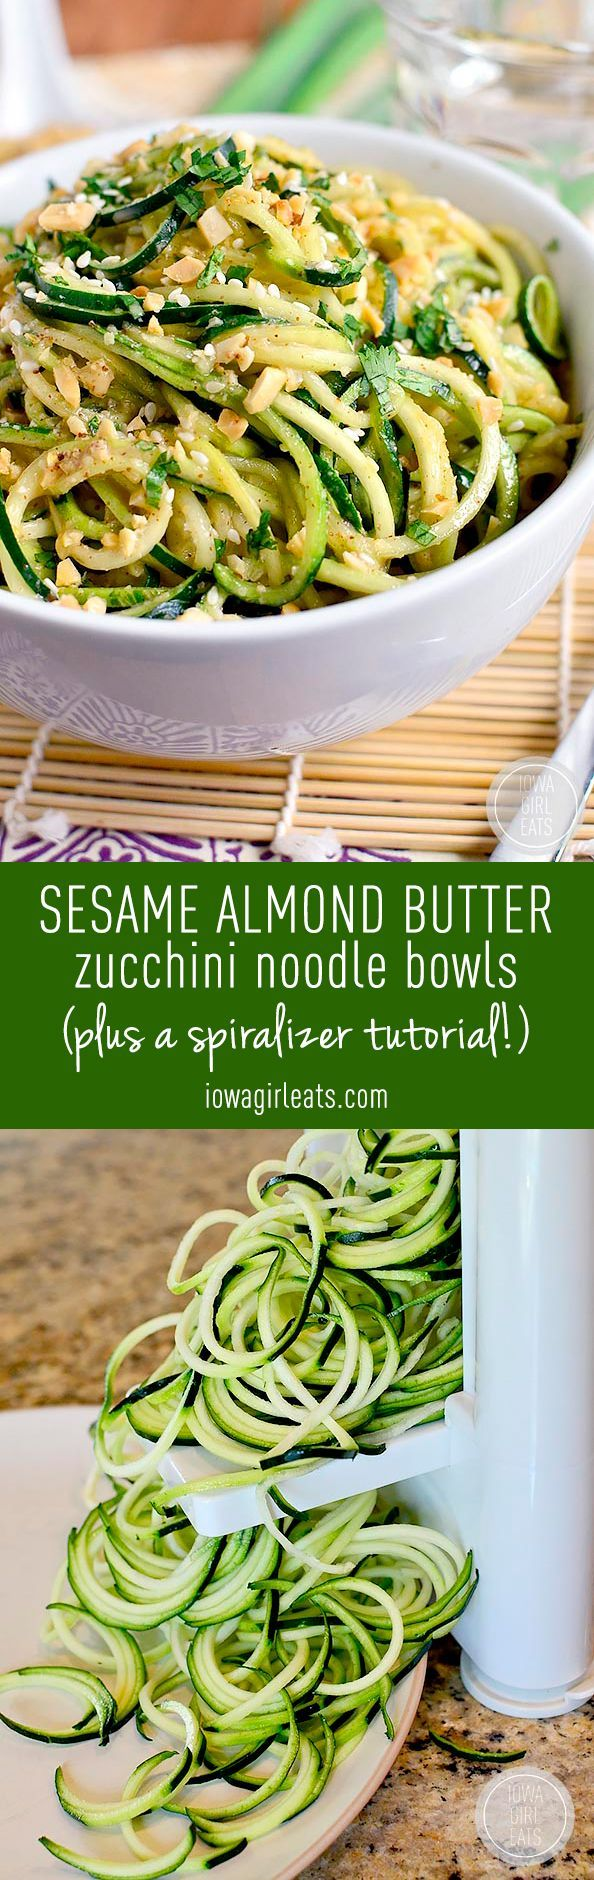 Sesame Almond Butter Zucchini Noodle Bowls by iowagirleats: A veggie-based spin on peanut noodles. Super quick, fresh, and satisfying! #Noodles #Zucchini #Sesame #Almond_Butter #Healthy #GF